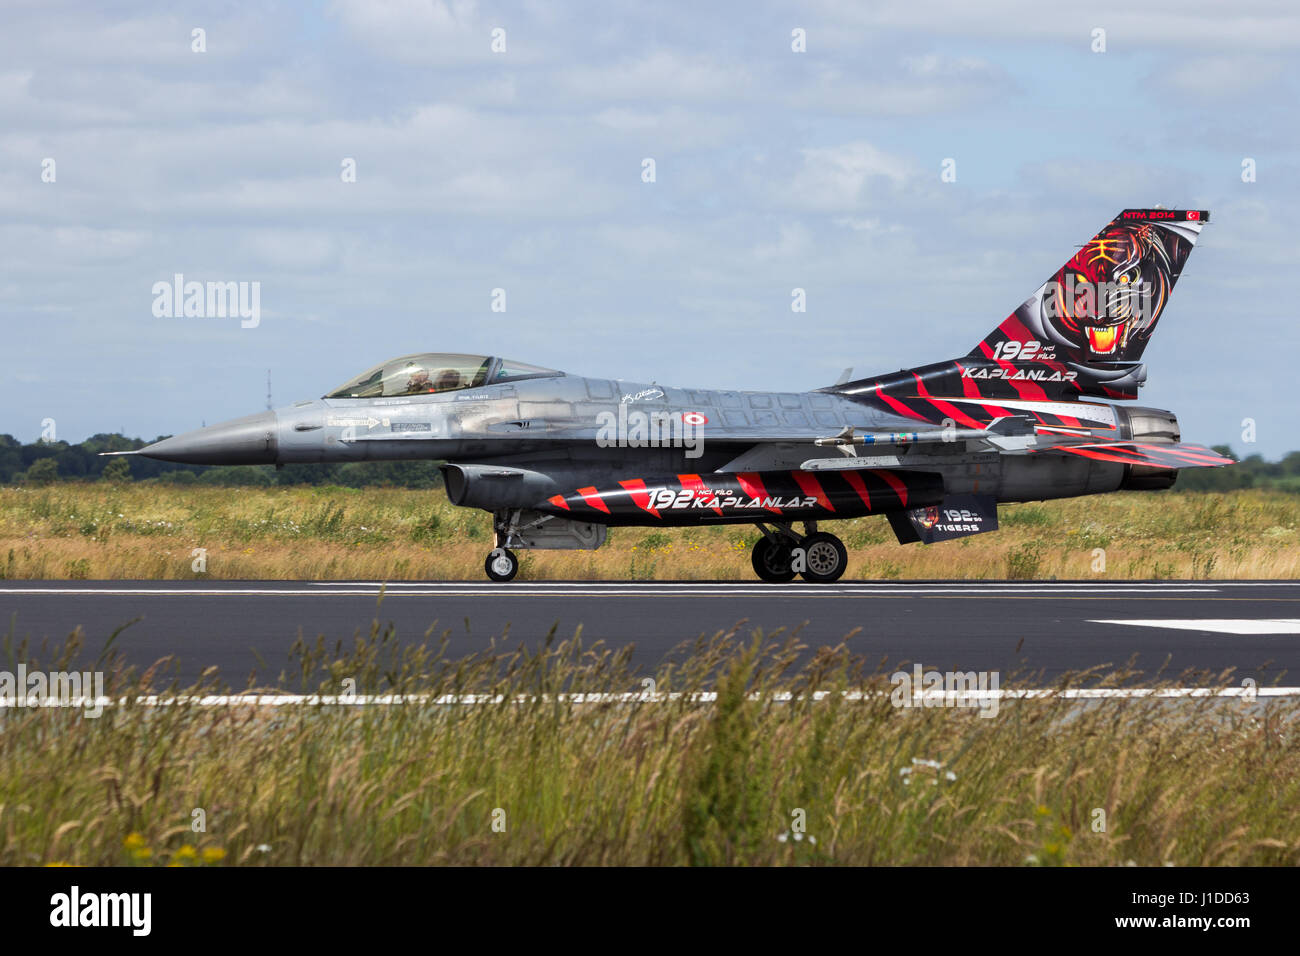 SCHLESWIG-JAGEL, GERMANY - JUN 23, 2014: Special tiger painted Turkish Air Force F-16 fighter jet plane from 192Filo - Stock Image